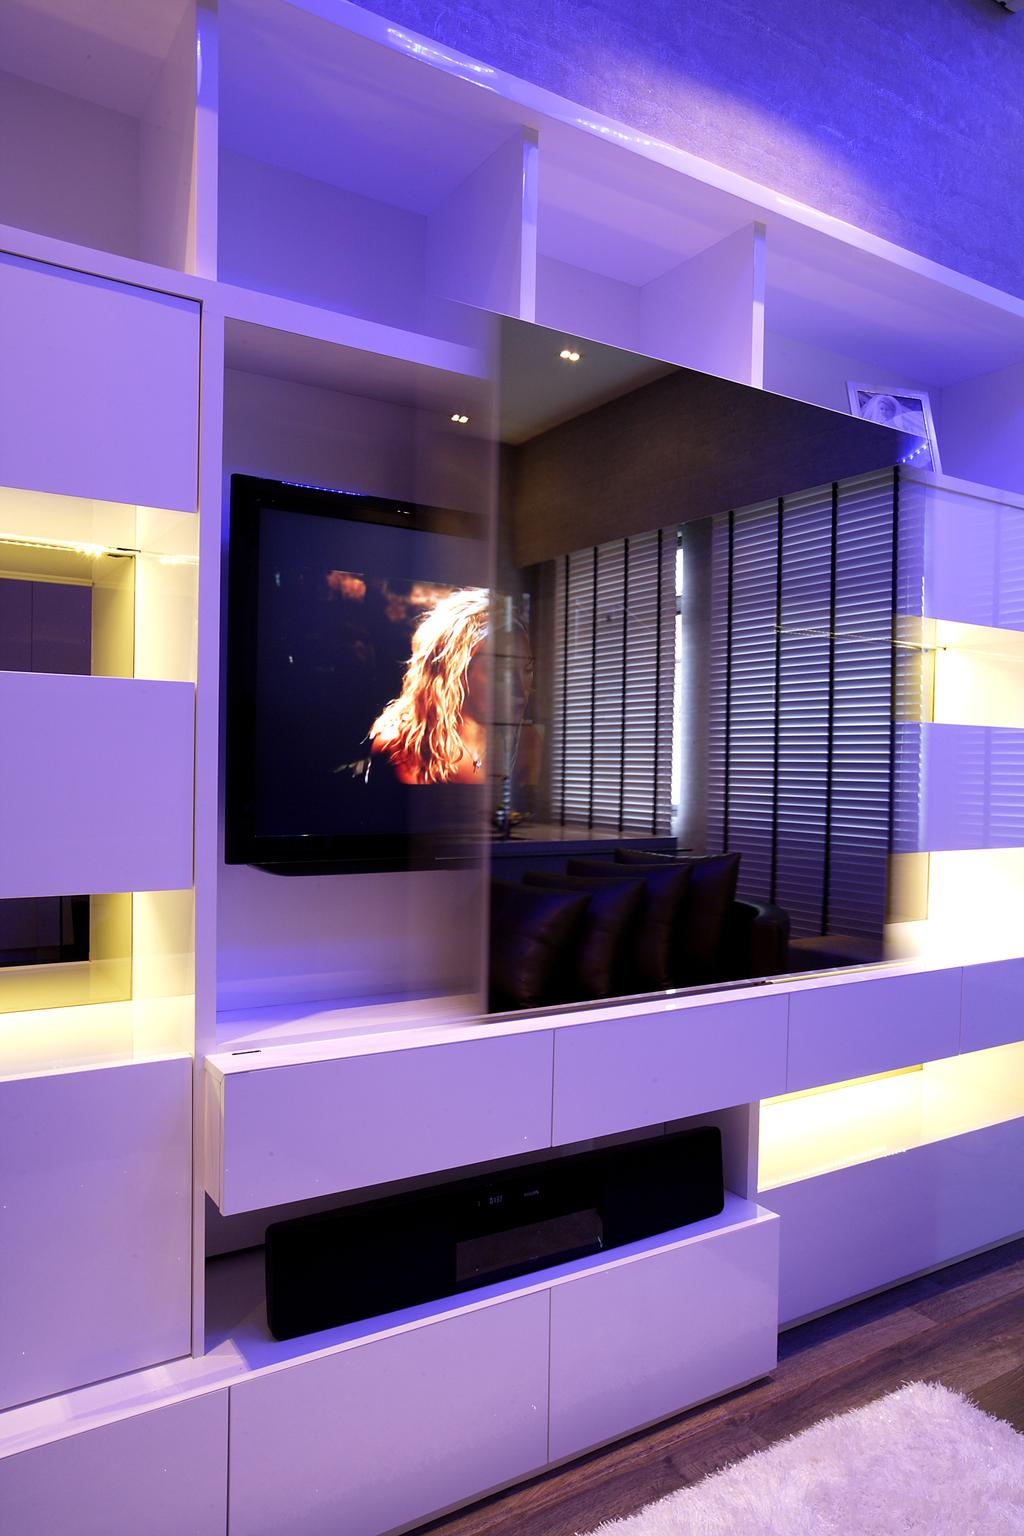 Beaux Monde Show Room (Ubi), Commercial, Interior Designer, Beaux Monde, Contemporary, Collage, Poster, Electronics, Lcd Screen, Monitor, Screen, Fire